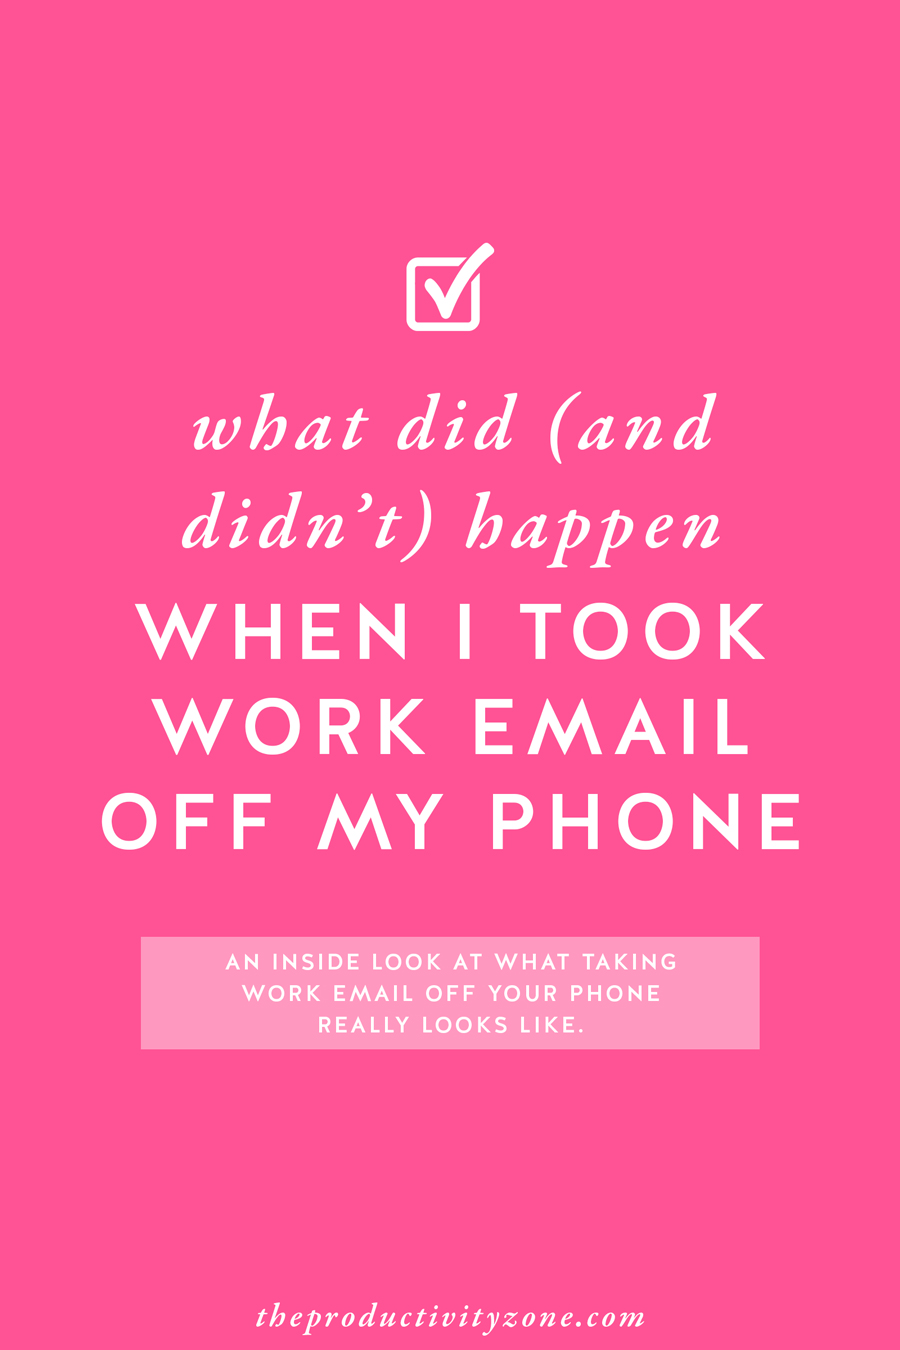 The decision to keep my phone work-email-free has been one of the best decisions I've ever made for my life and business. Find out what else happened when I took work email off my phone over on The Productivity Zone!!